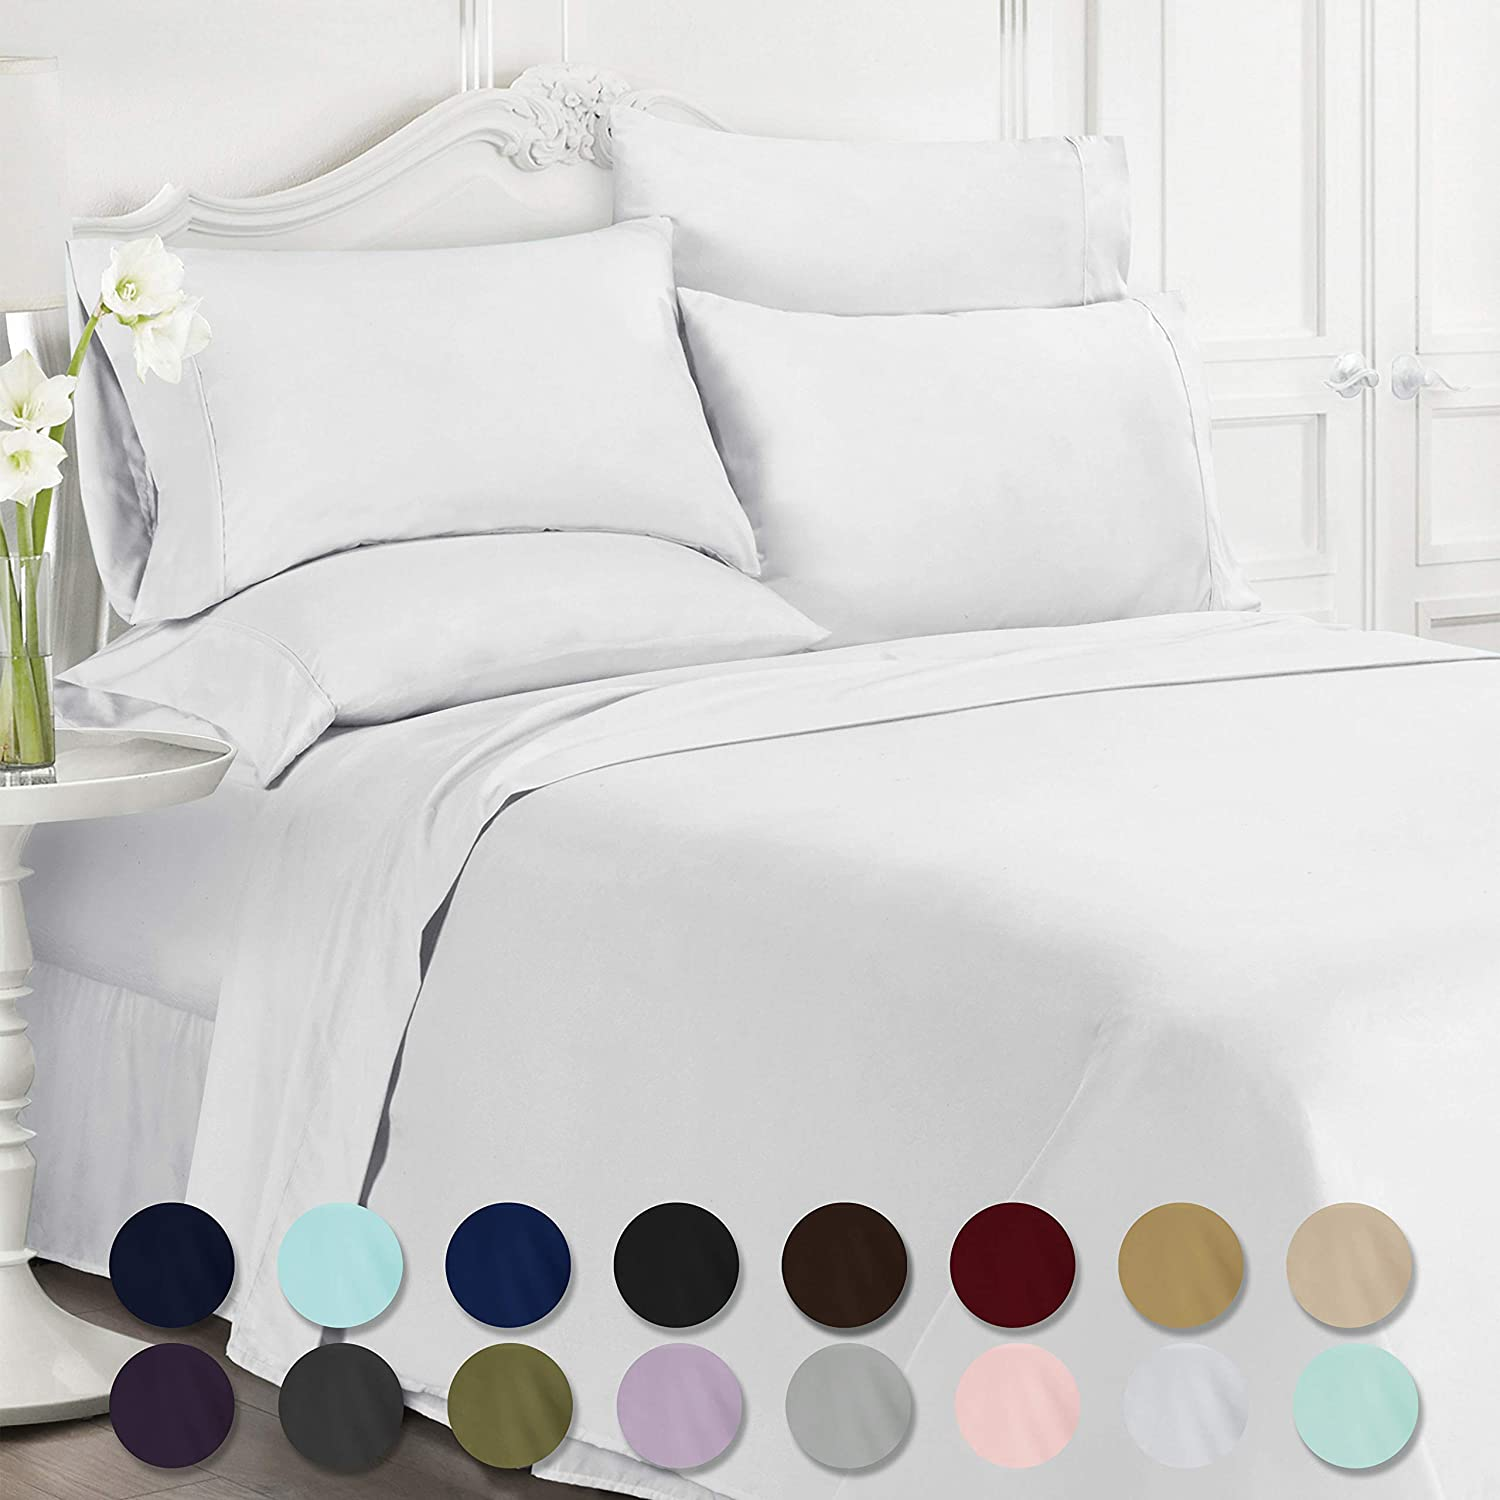 Swift Home Luxury Bedding Collection, Ultra-Soft Brushed Microfiber 6-Piece Bed Sheet Sets, Extremely Durable - Easy Fit - Wrinkle Resistant - (Includes 2 Bonus Pillowcases), Queen, White